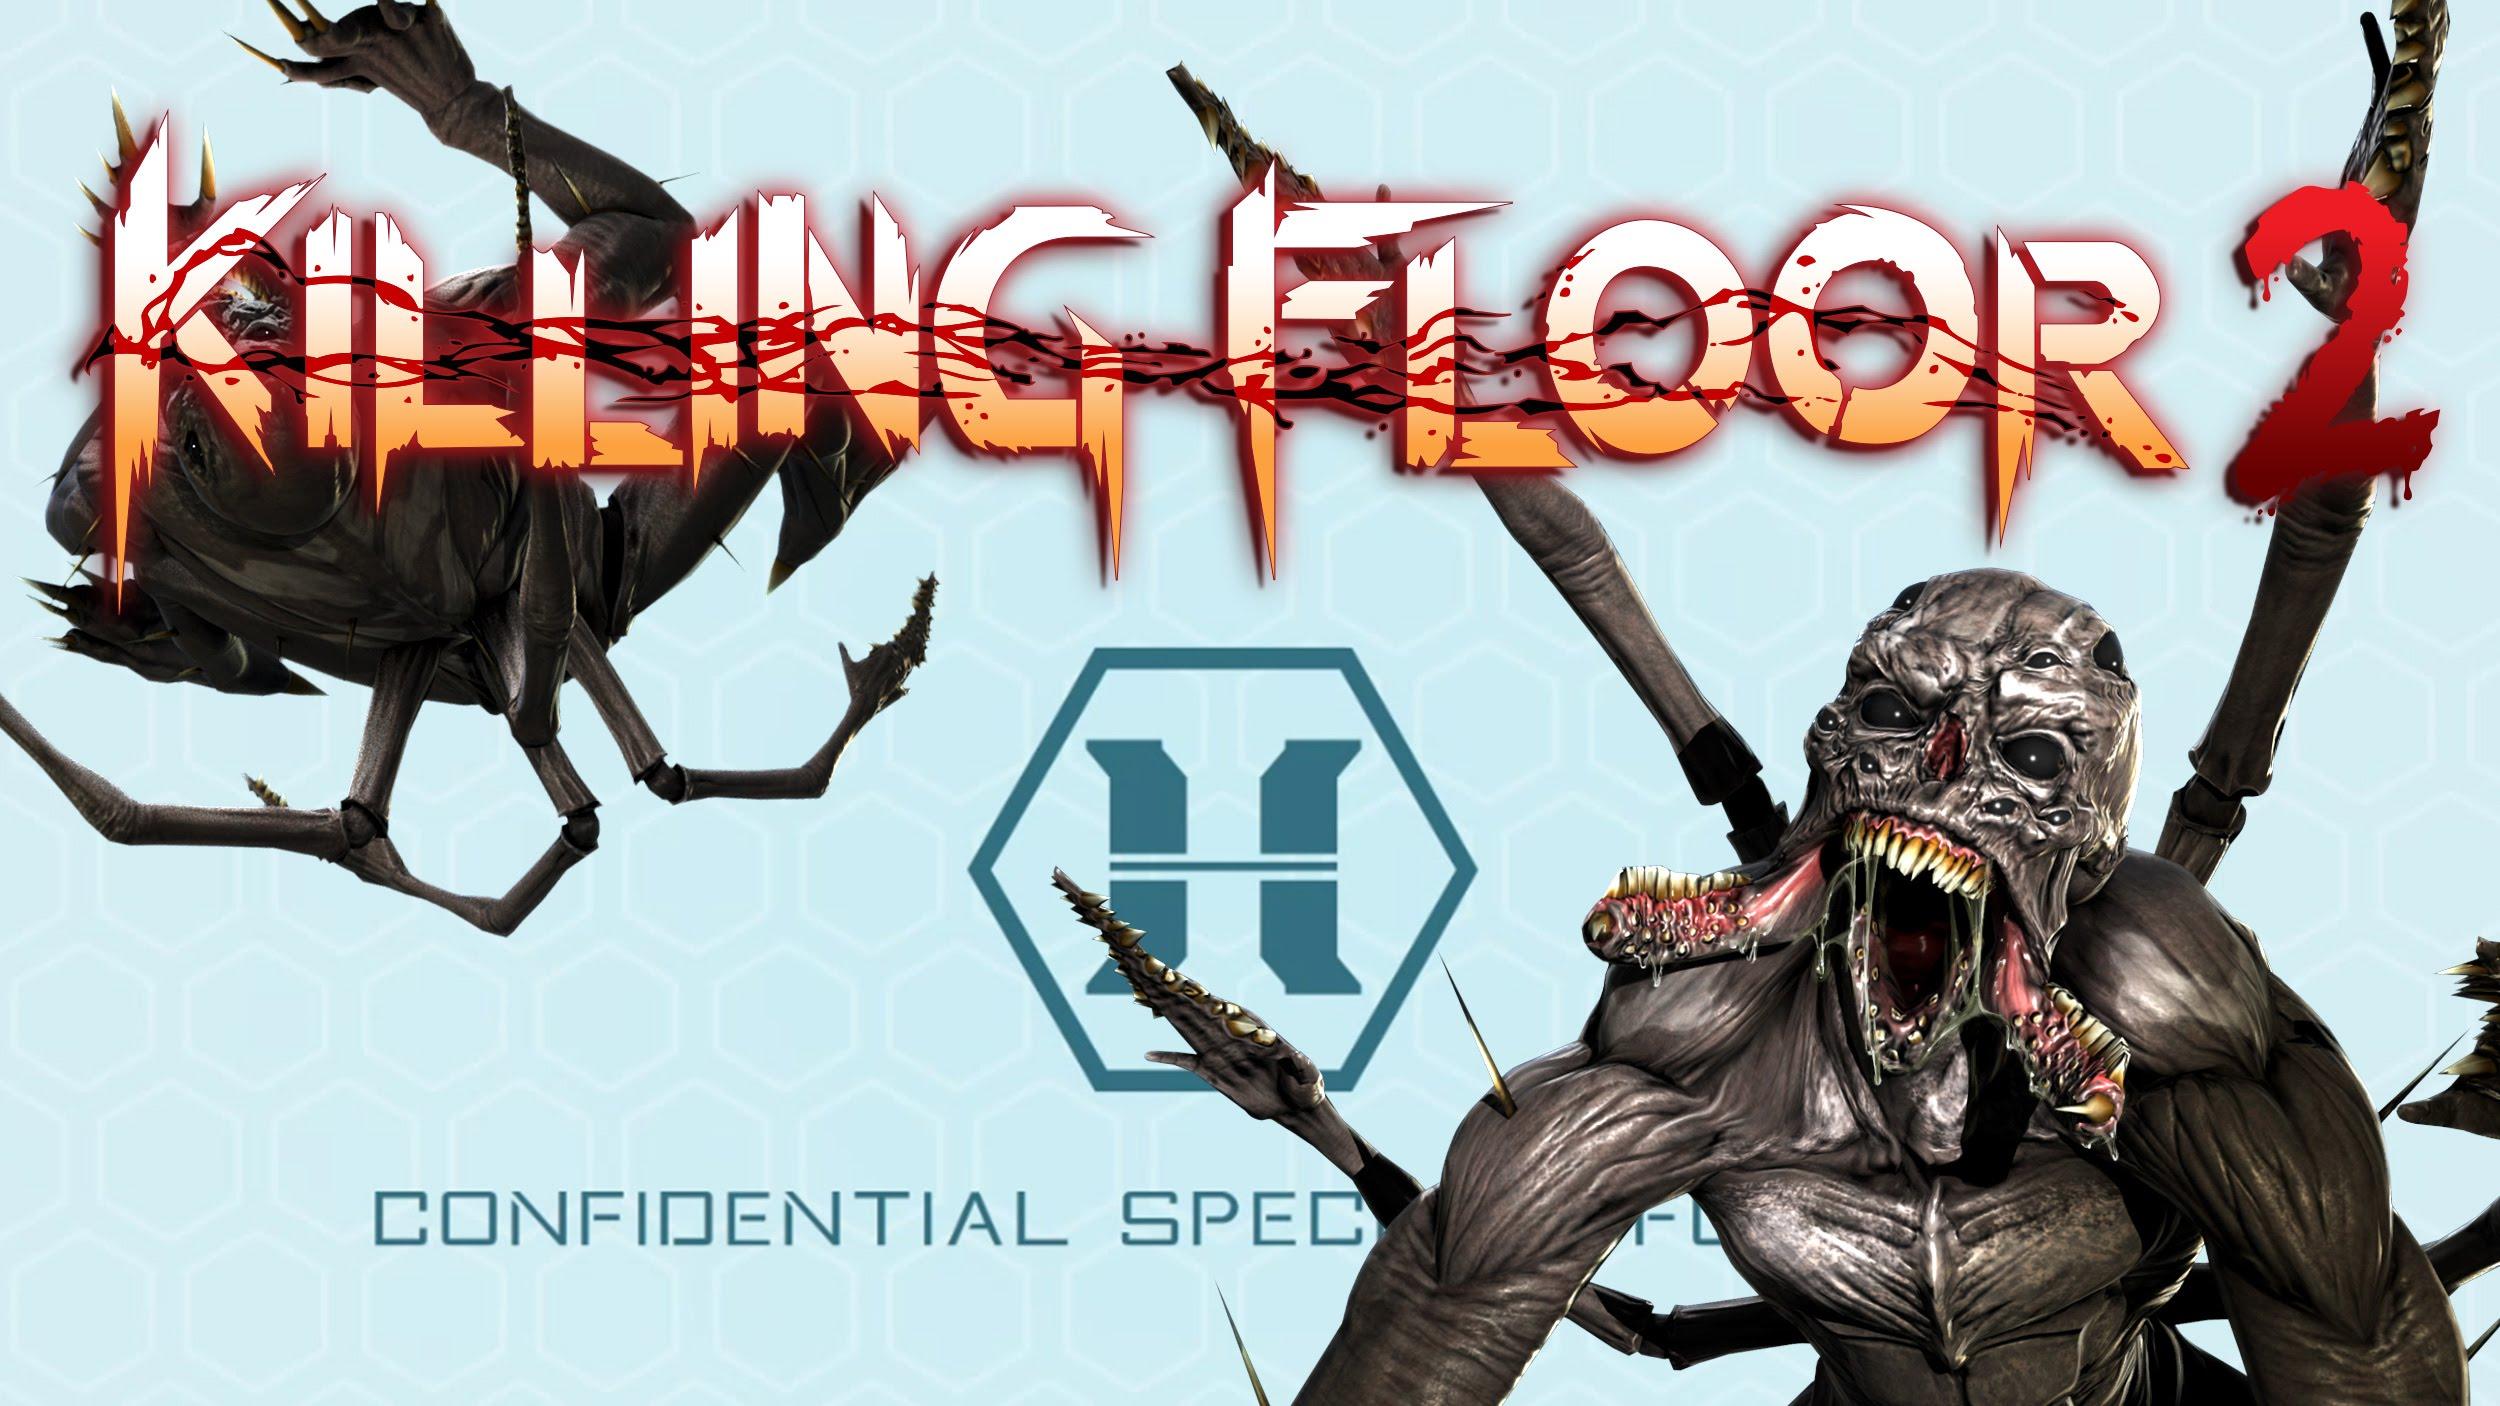 Killing Floor 2 - Horzine Biotech Confidential Specimen Footage: Part 1